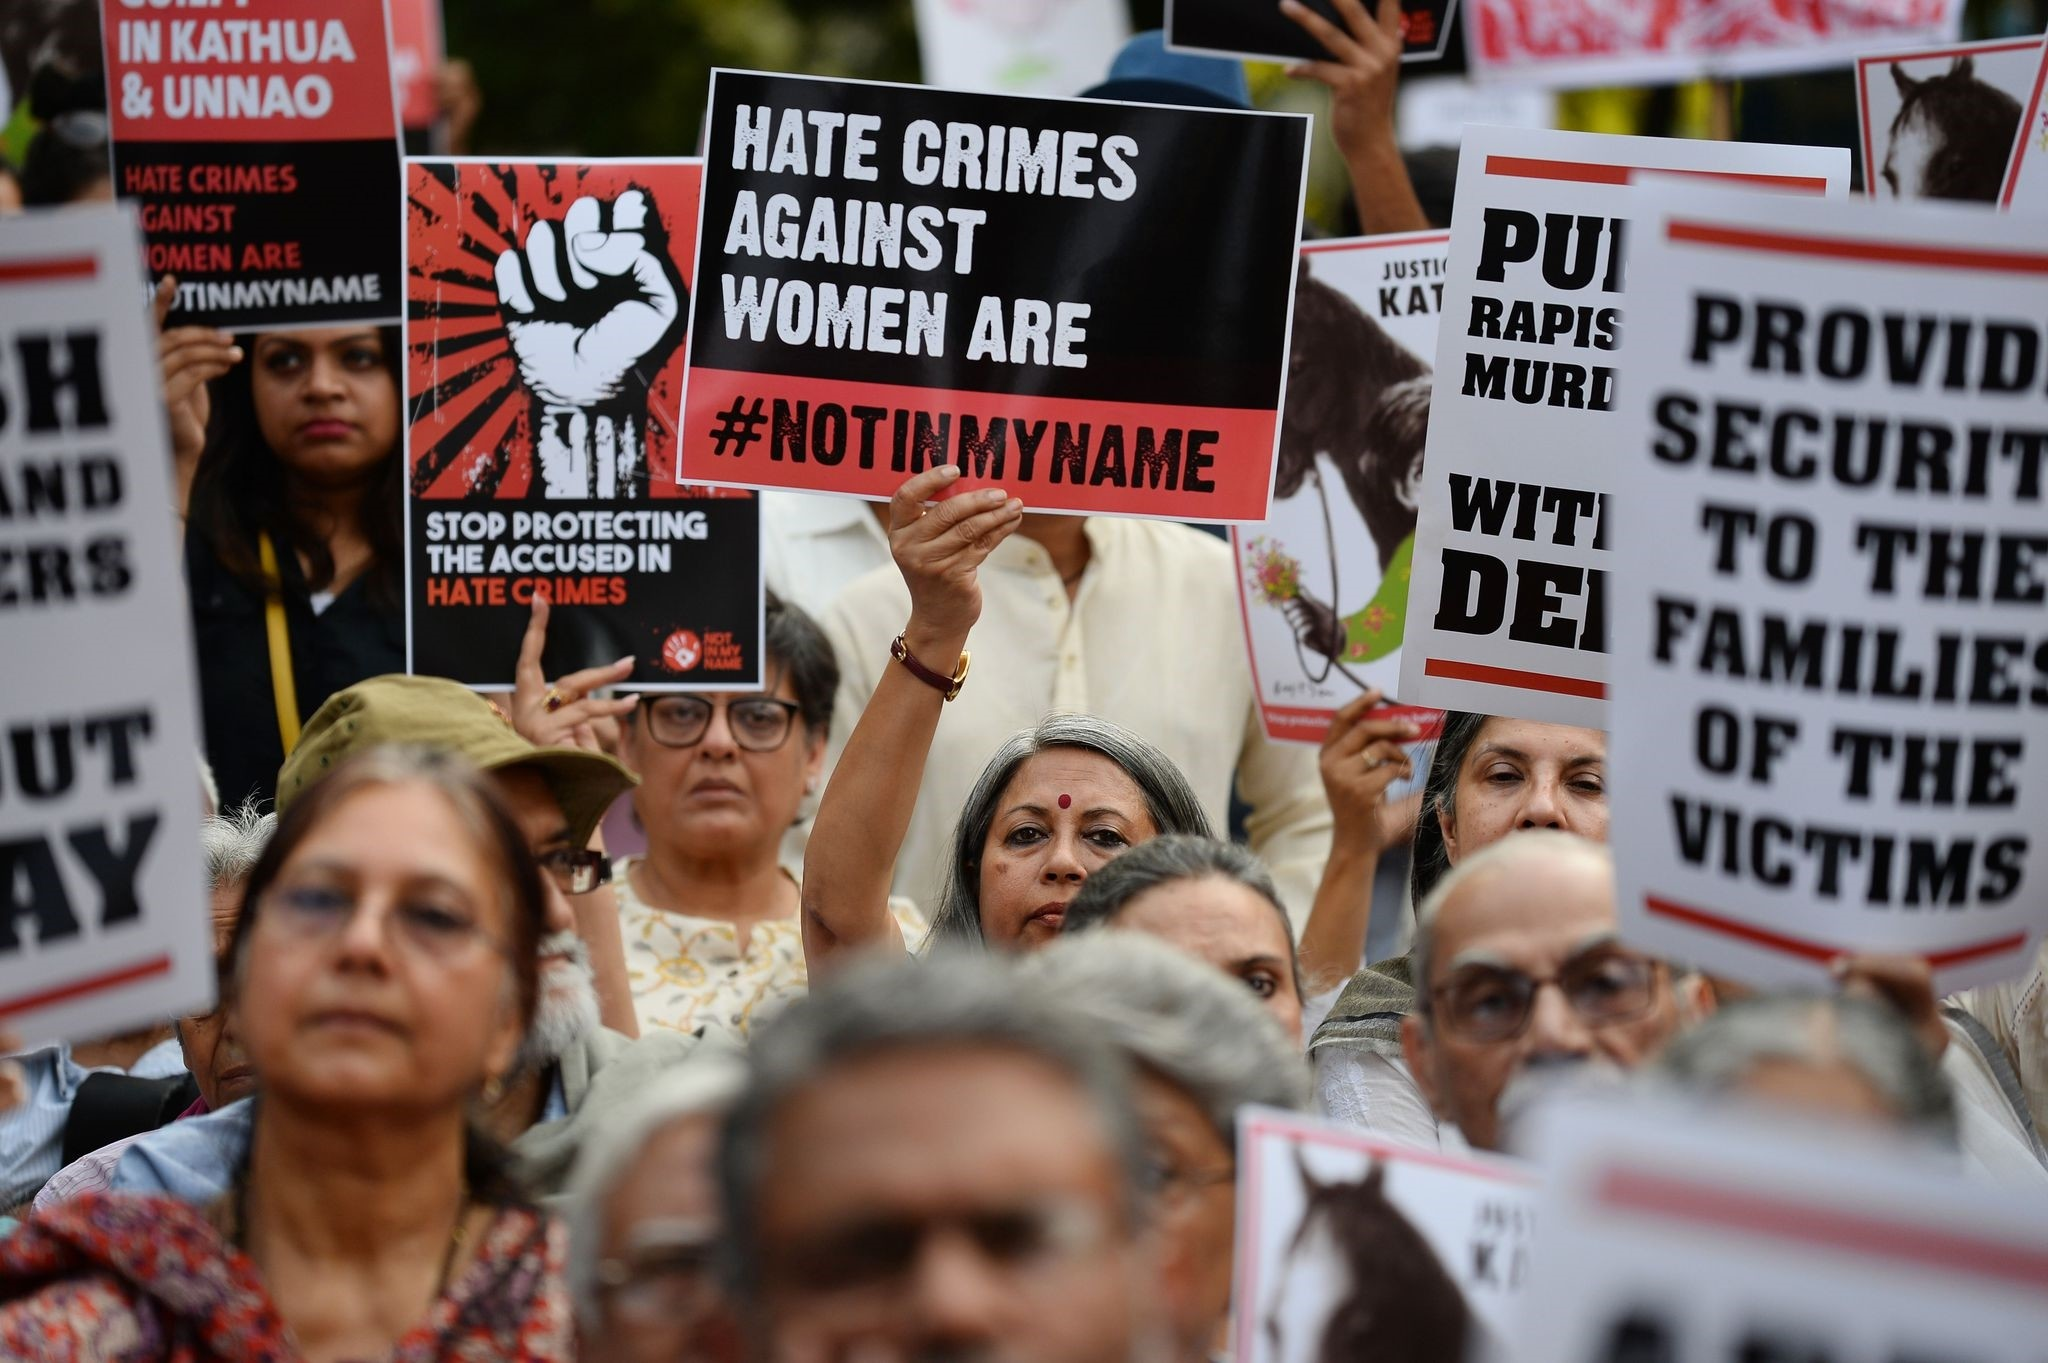 In this file photo taken on April 15, 2018 Indian demonstrators hold placards during a 'Not In My Name' protest in support of rape victims following high profile cases in Jammu and Kashmir and Uttar Pradesh states, in New Delhi. (AFP Photo)